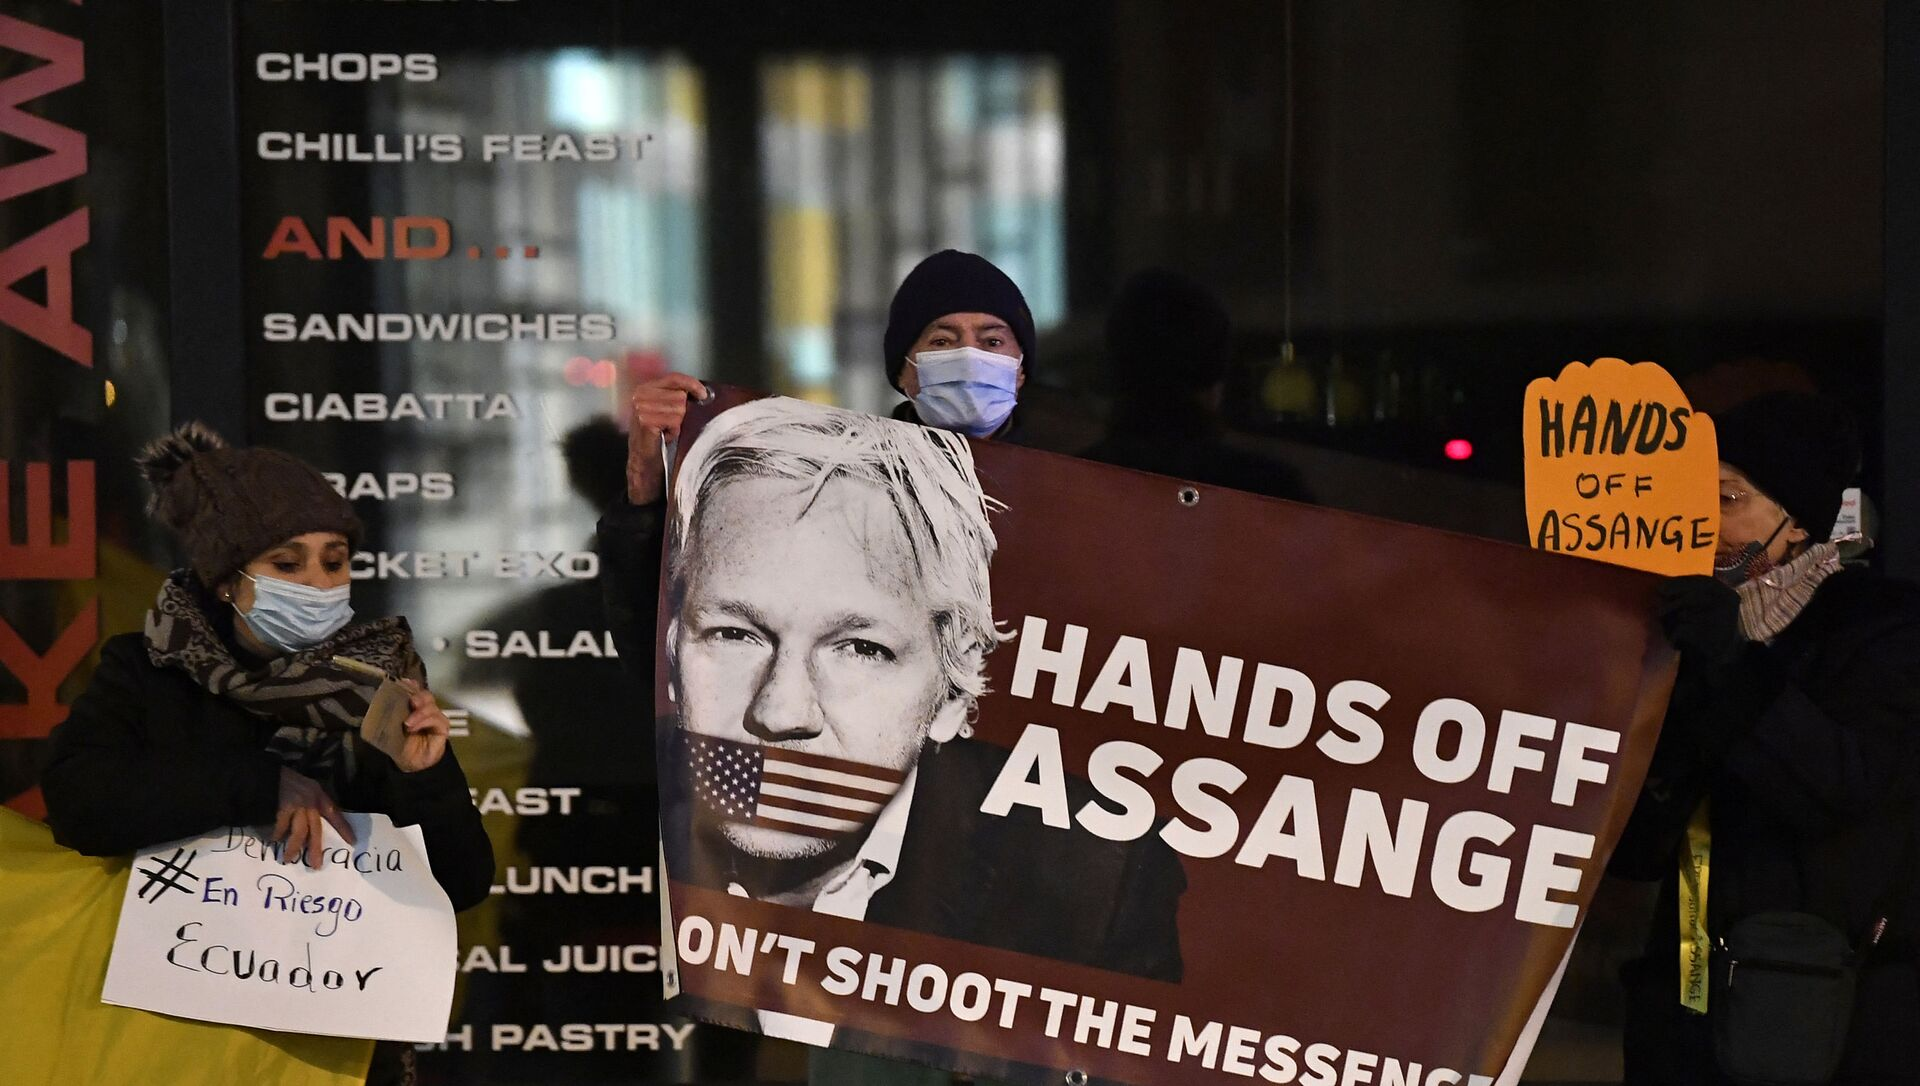 Protesters hold a sign to support WikiLeaks founder Julian Assange in front of the EU British Embassy in Brussels on December 07, 2020 - Sputnik International, 1920, 23.07.2021